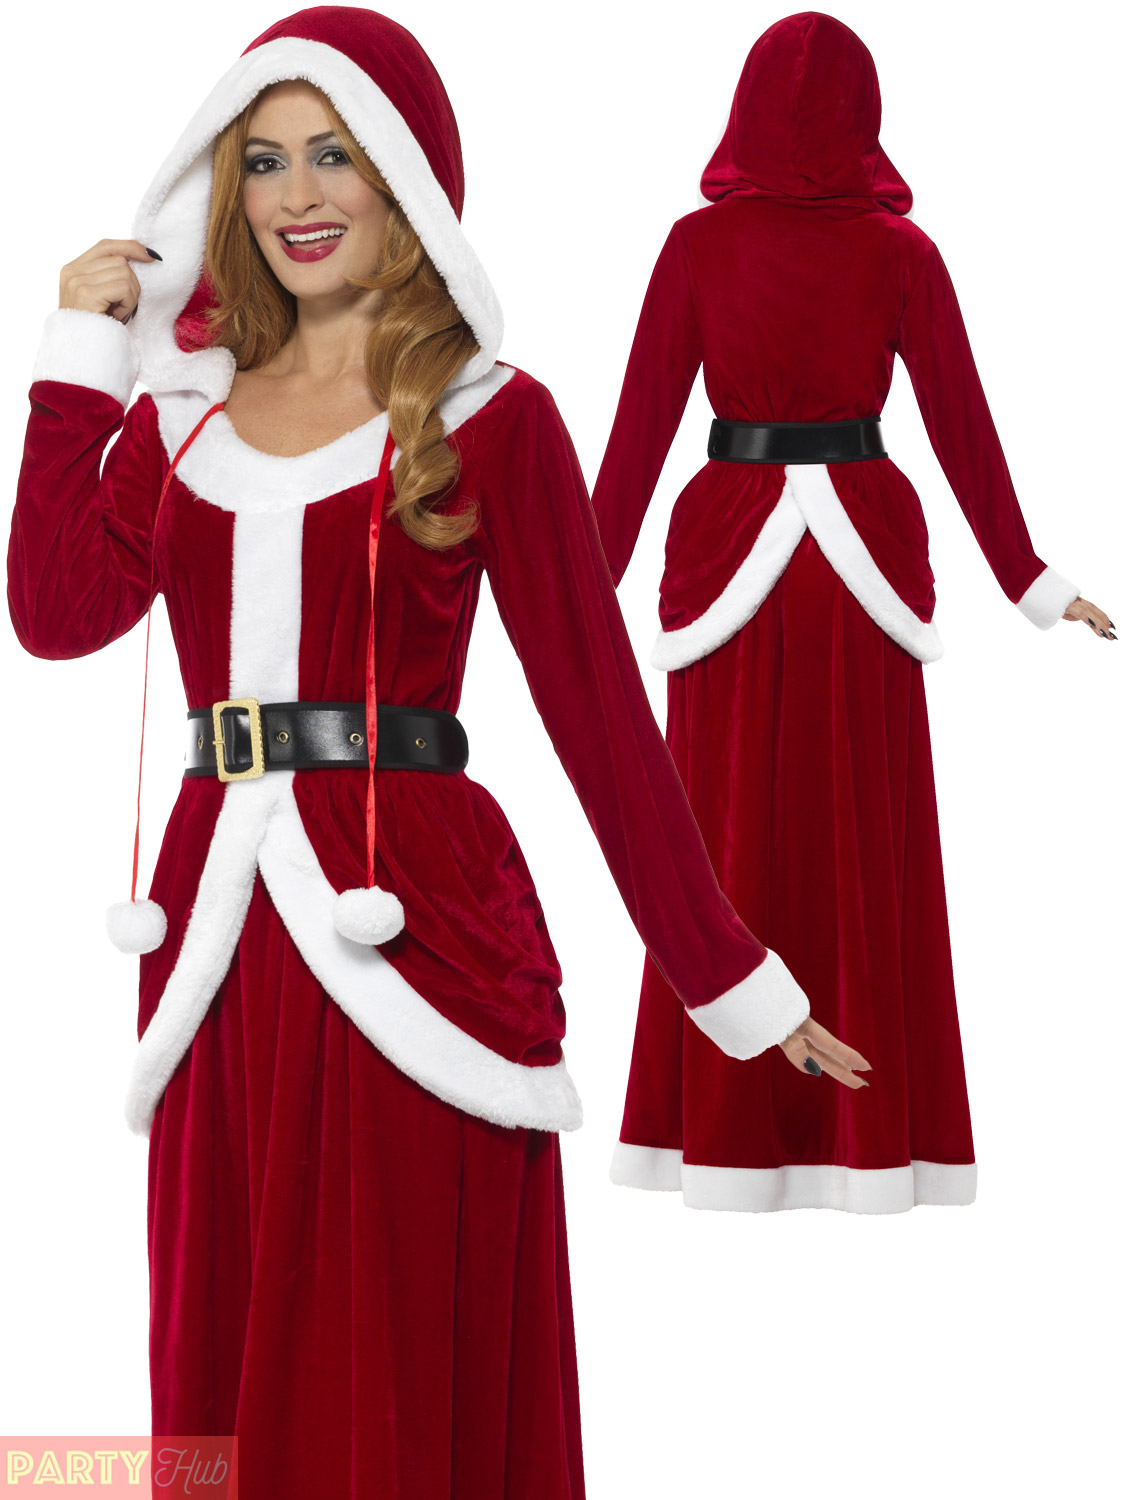 How to Make a Mrs. Claus Outfit for Dogs